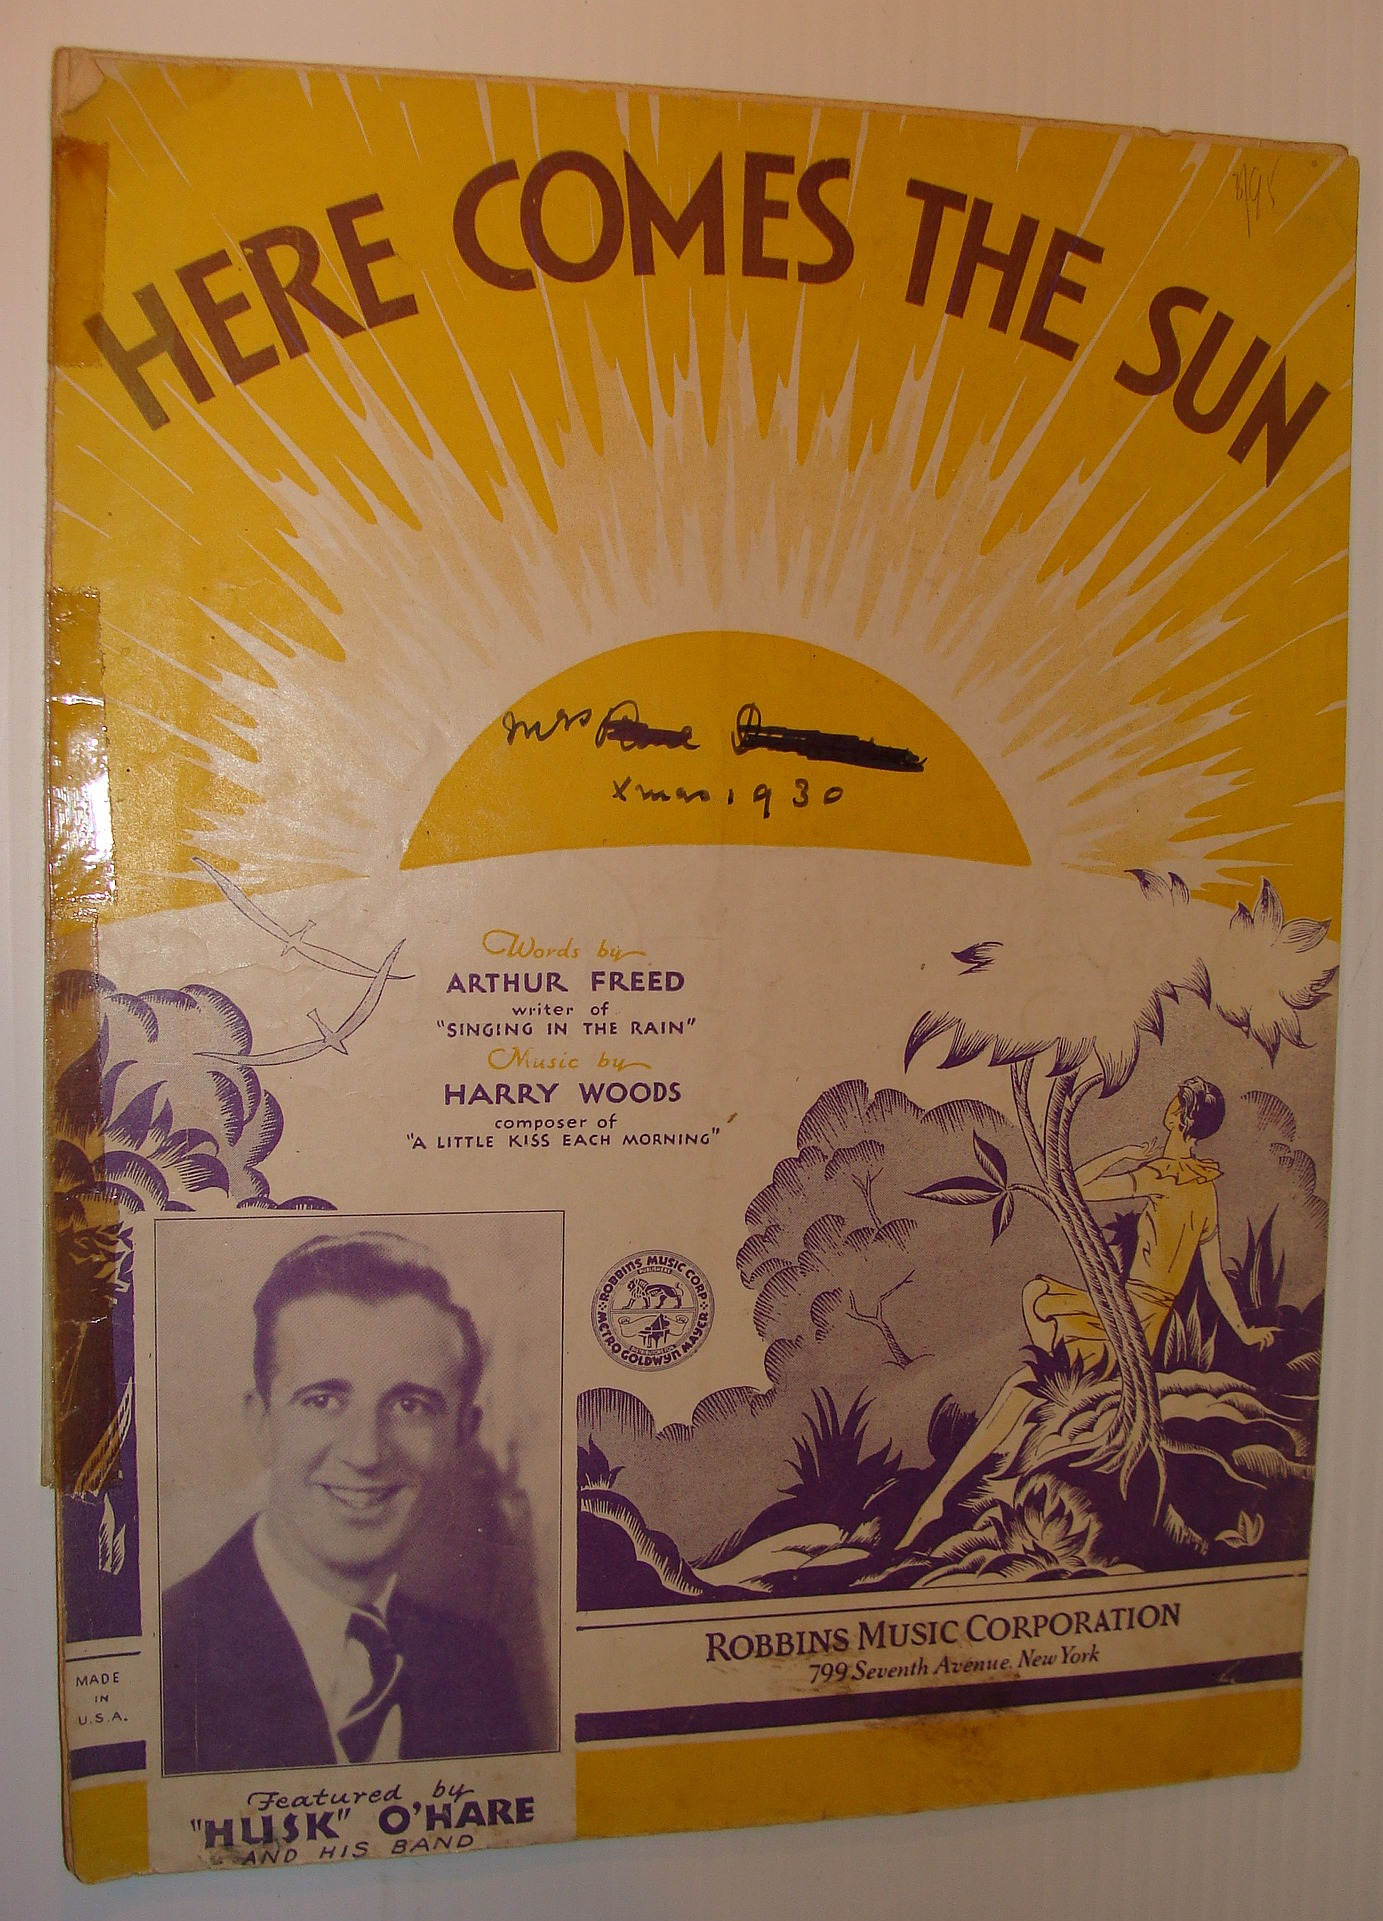 Here Comes the Sun - Sheet Music, Freed, Arthur; Woods, Harry